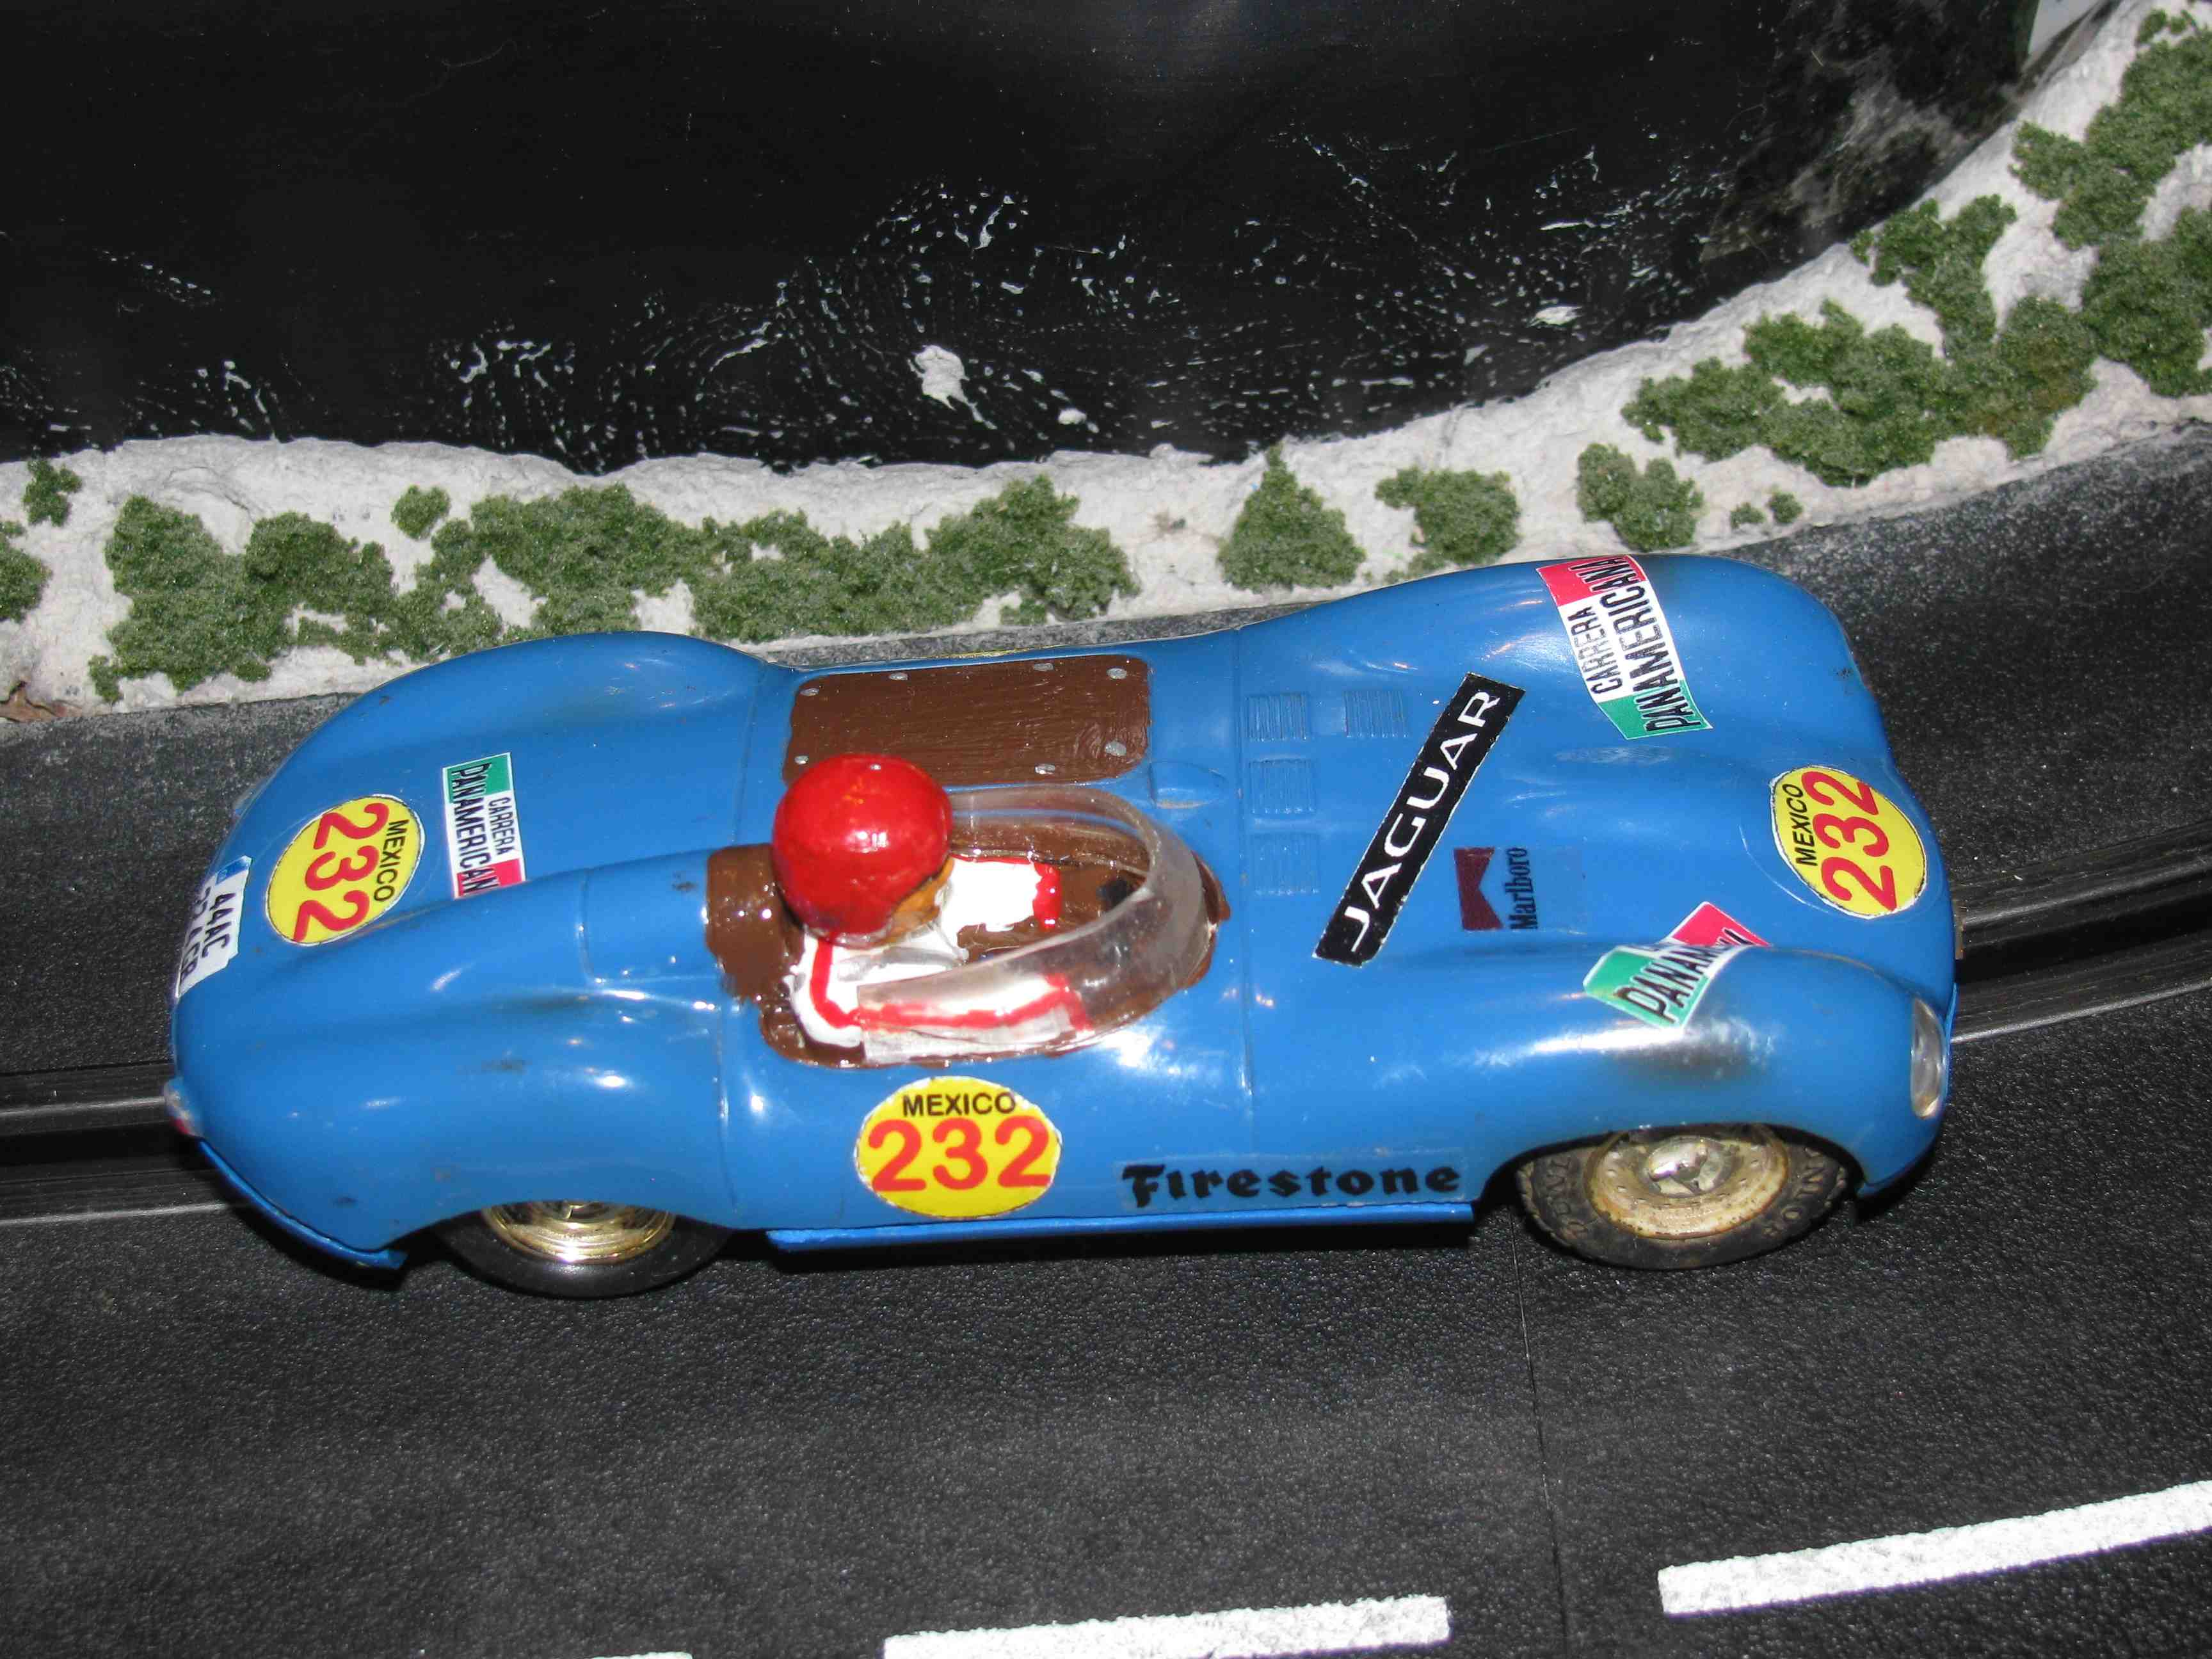 * SOLD * Vintage SCALEXTRIC Triang Jaguar D-Type Slot Car 1/32 Scale Blue Car #232